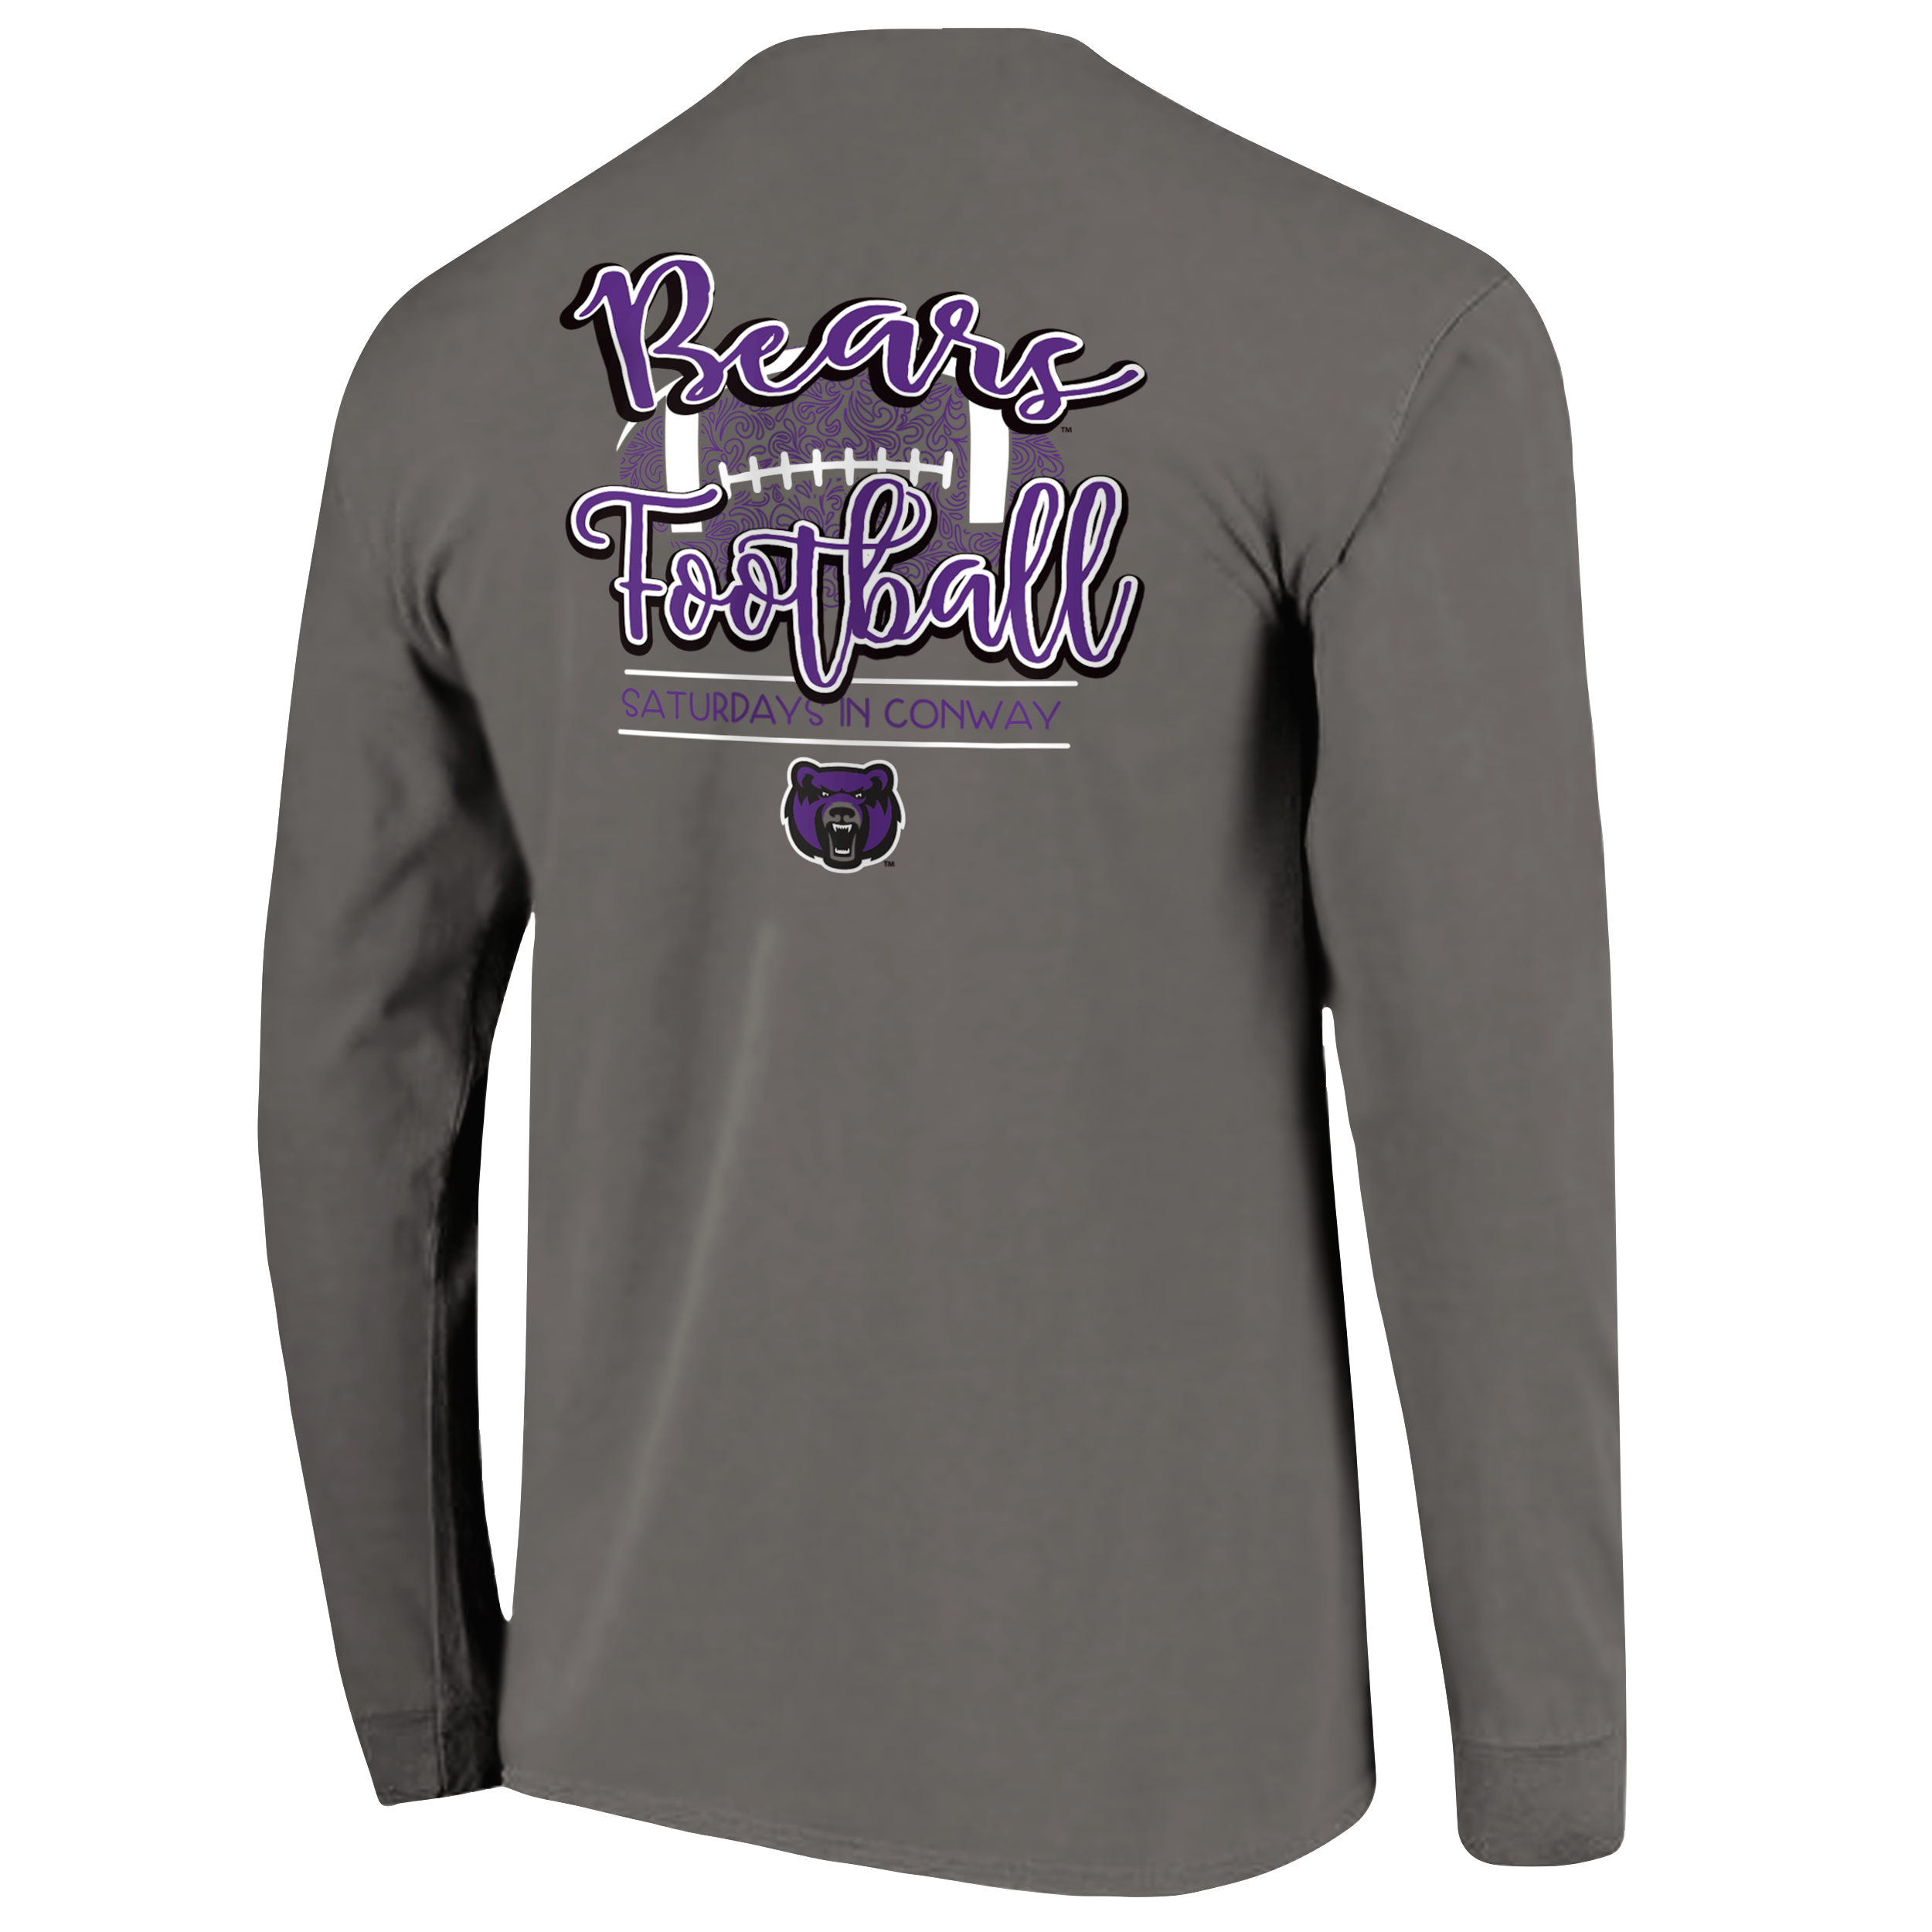 Bears Football CC Long Sleeve